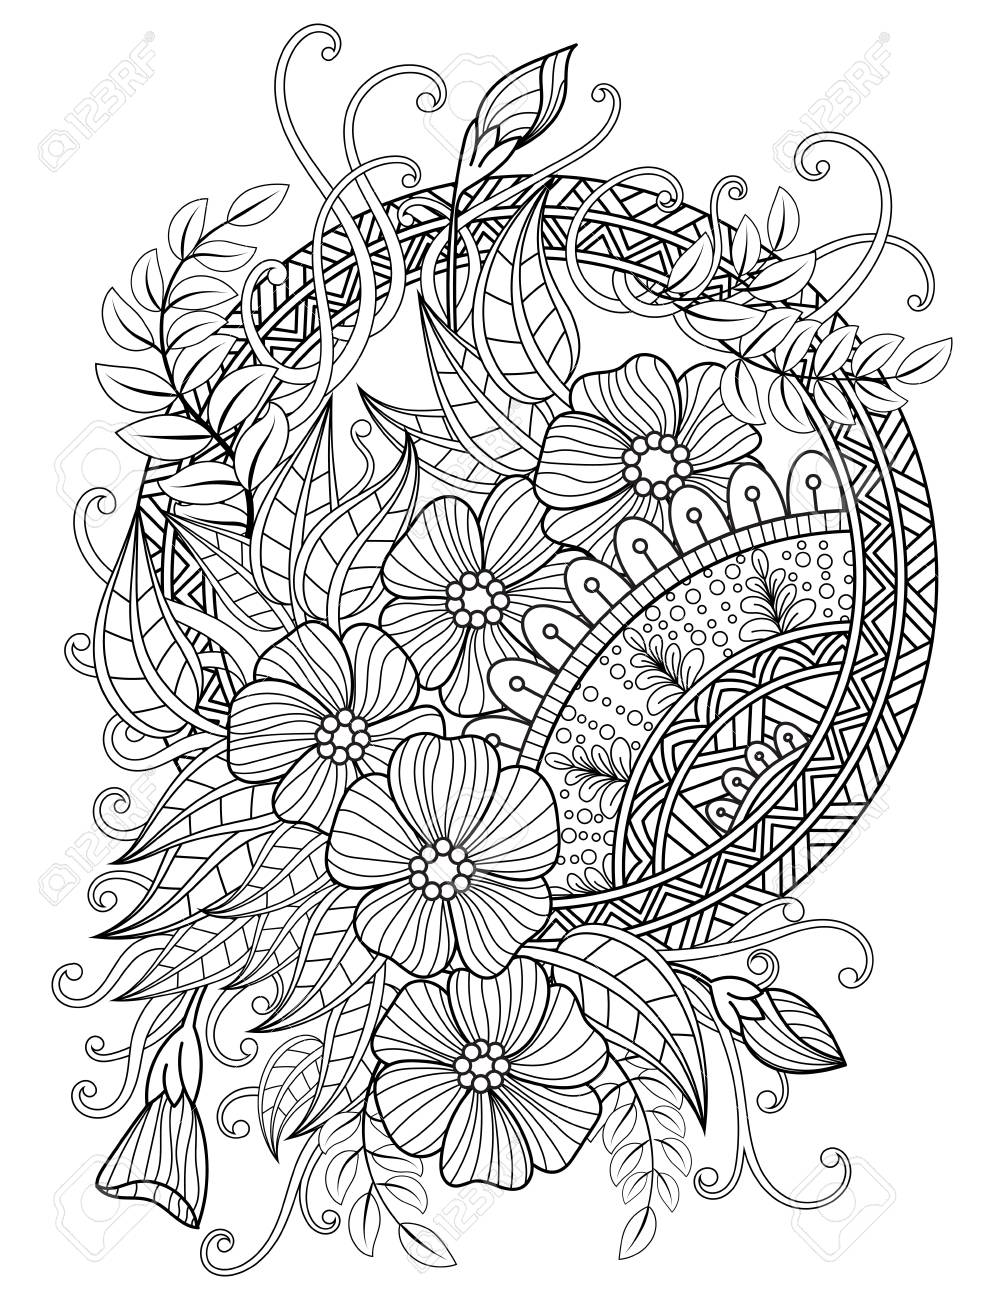 Mandala Adult Coloring Pages Royalty Free Cliparts Vectors And